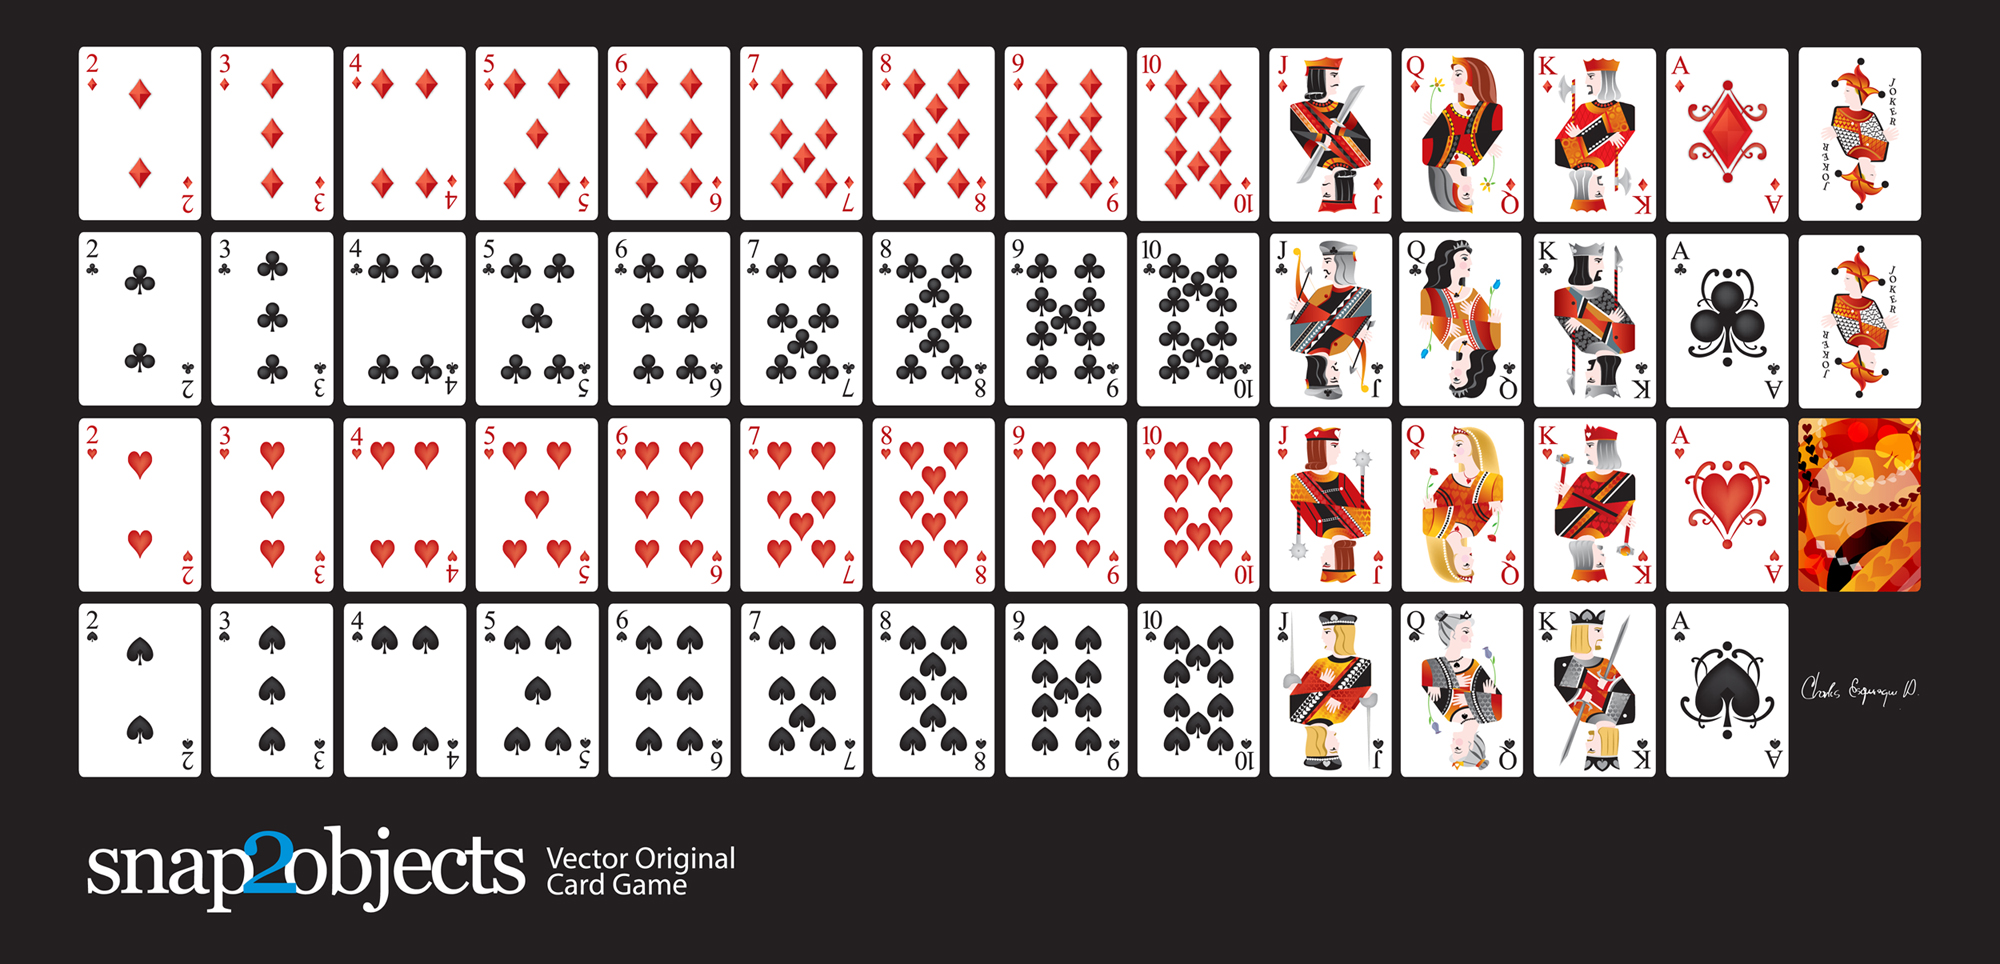 Deck cards images